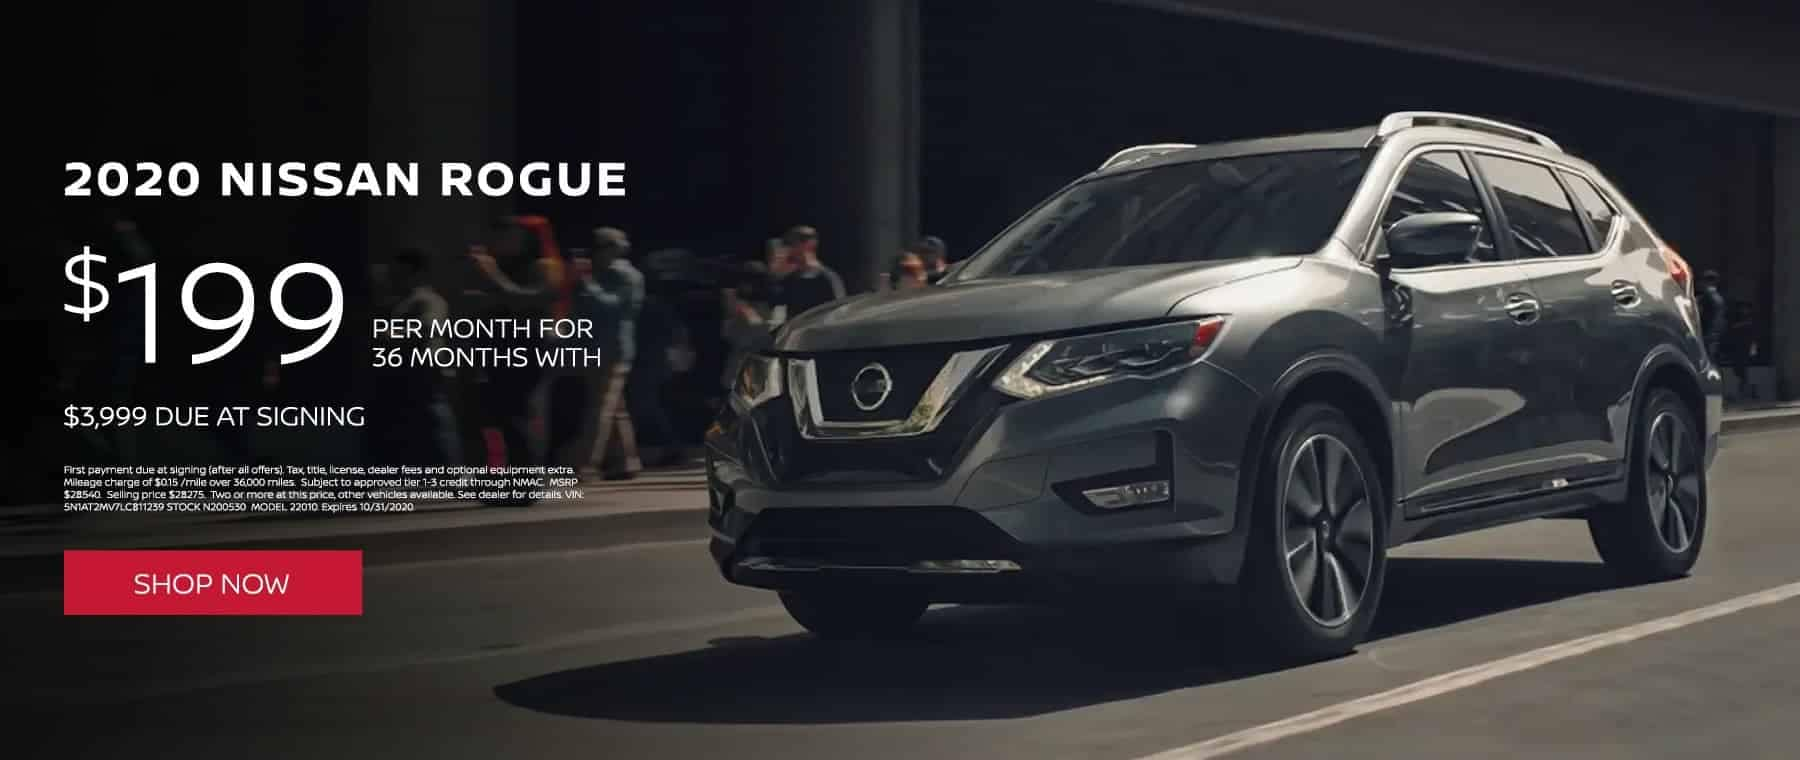 2020 Nissan Rogue $199 per month